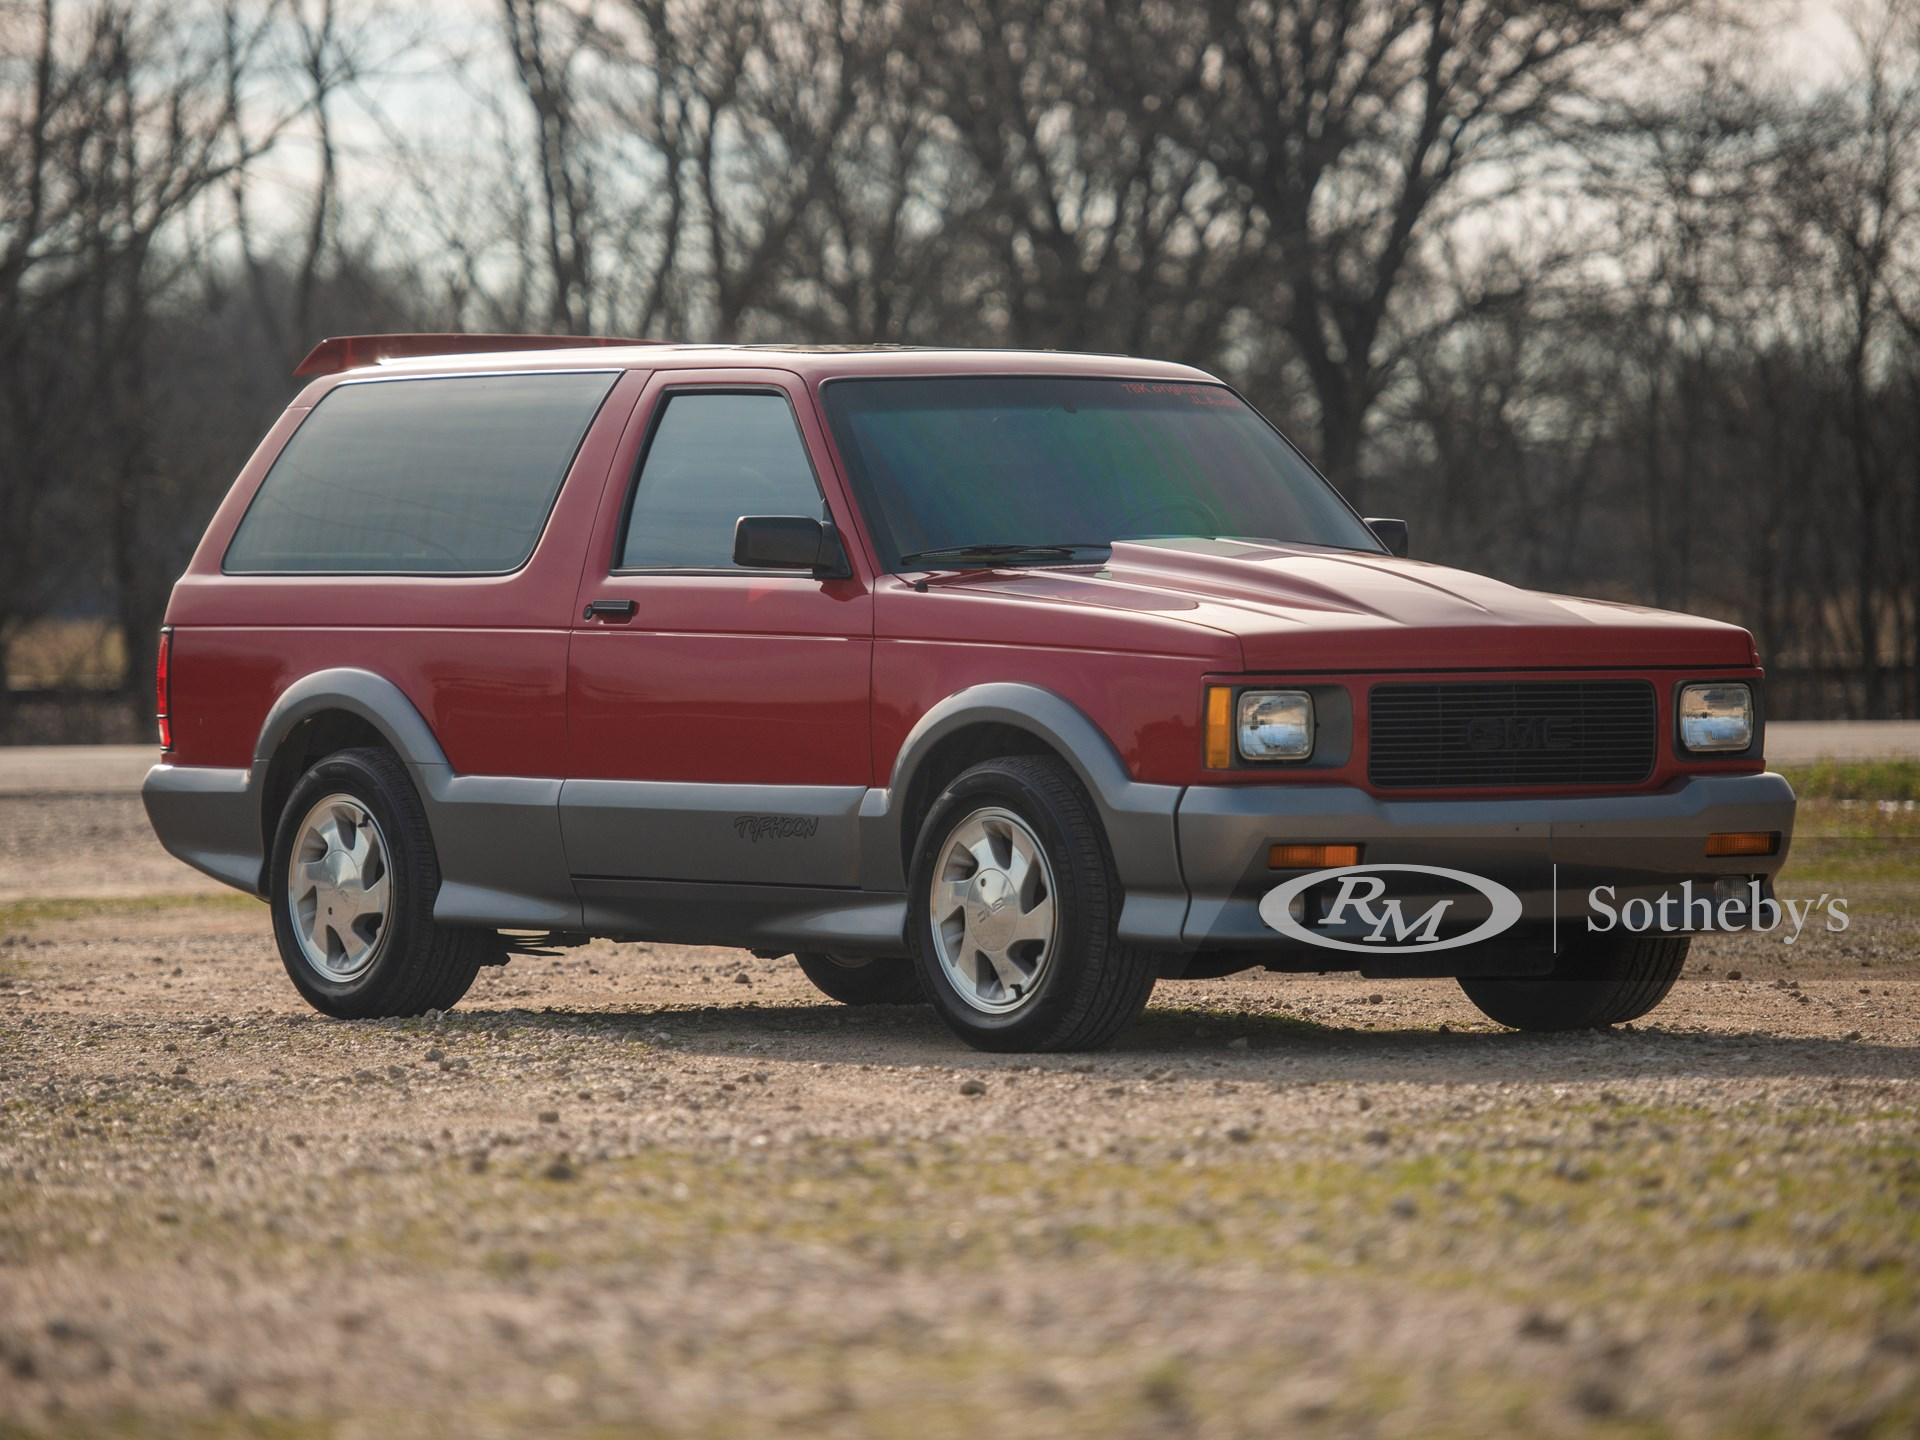 1992 Gmc Typhoon Fort Lauderdale 2019 Rm Auctions